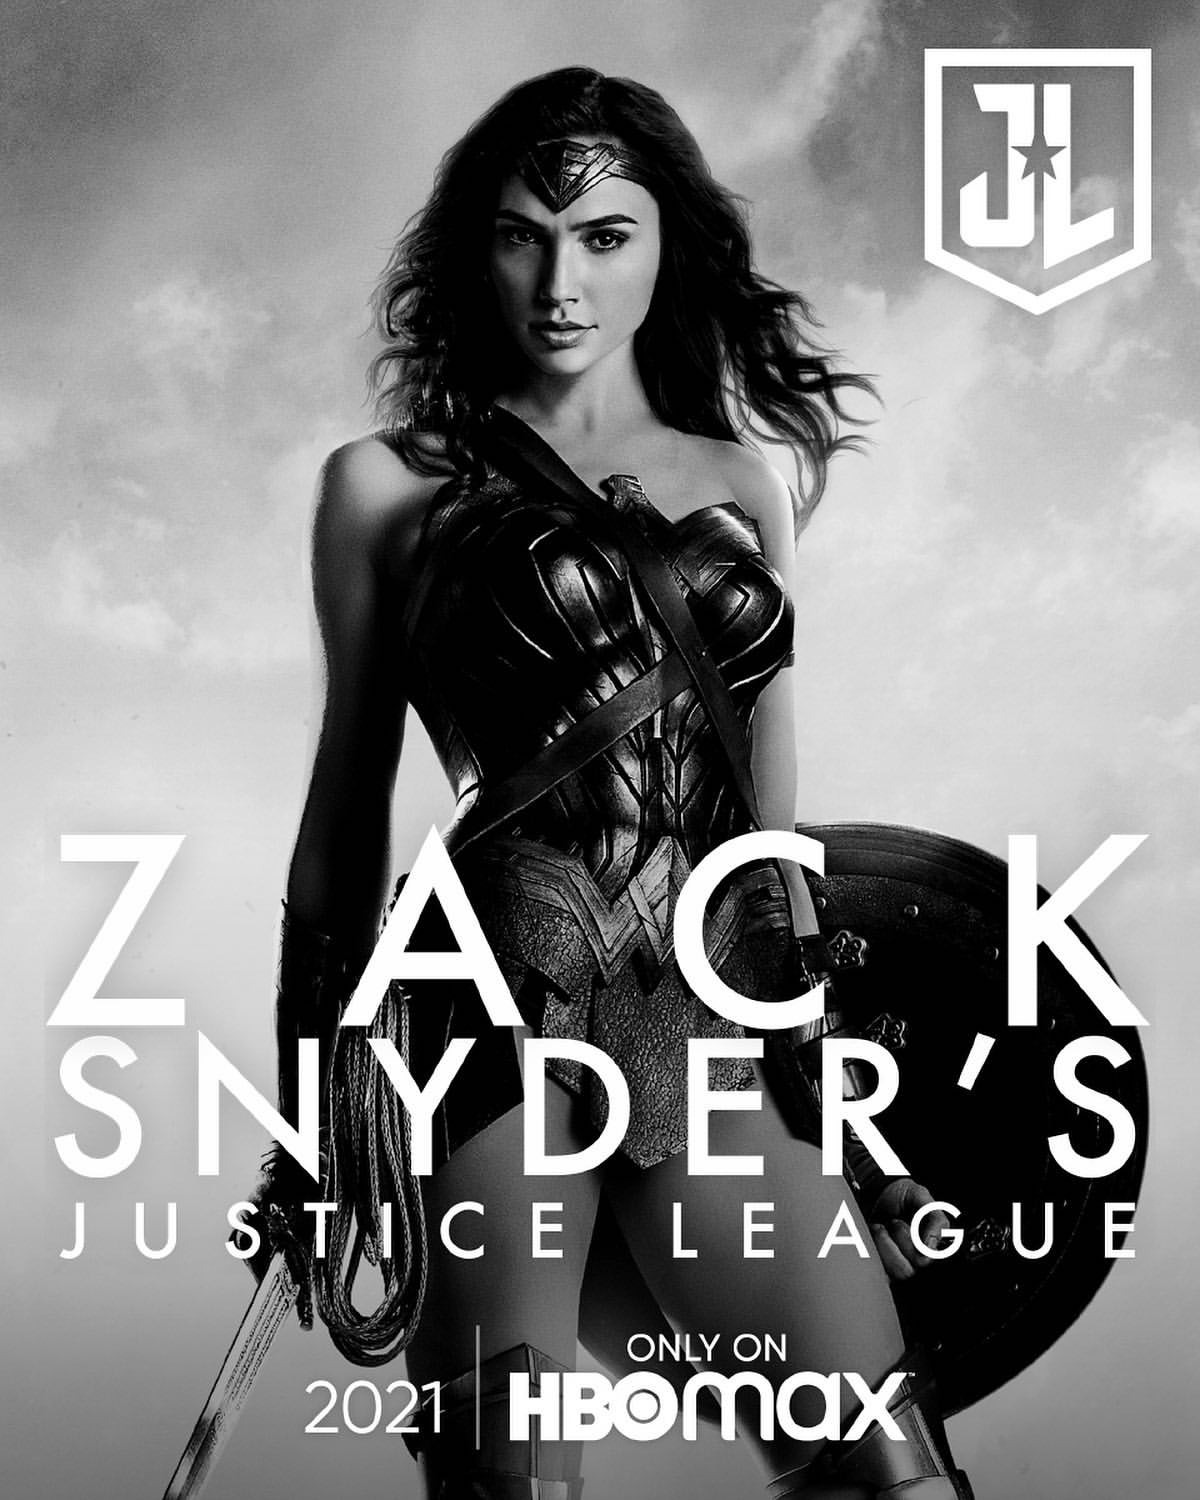 szmk_hbo_justice_league_snydercut_zack_snyder_batman_dc_comics_superman_aquaman_wonder_woman_cyborg_darkseid_4.jpg